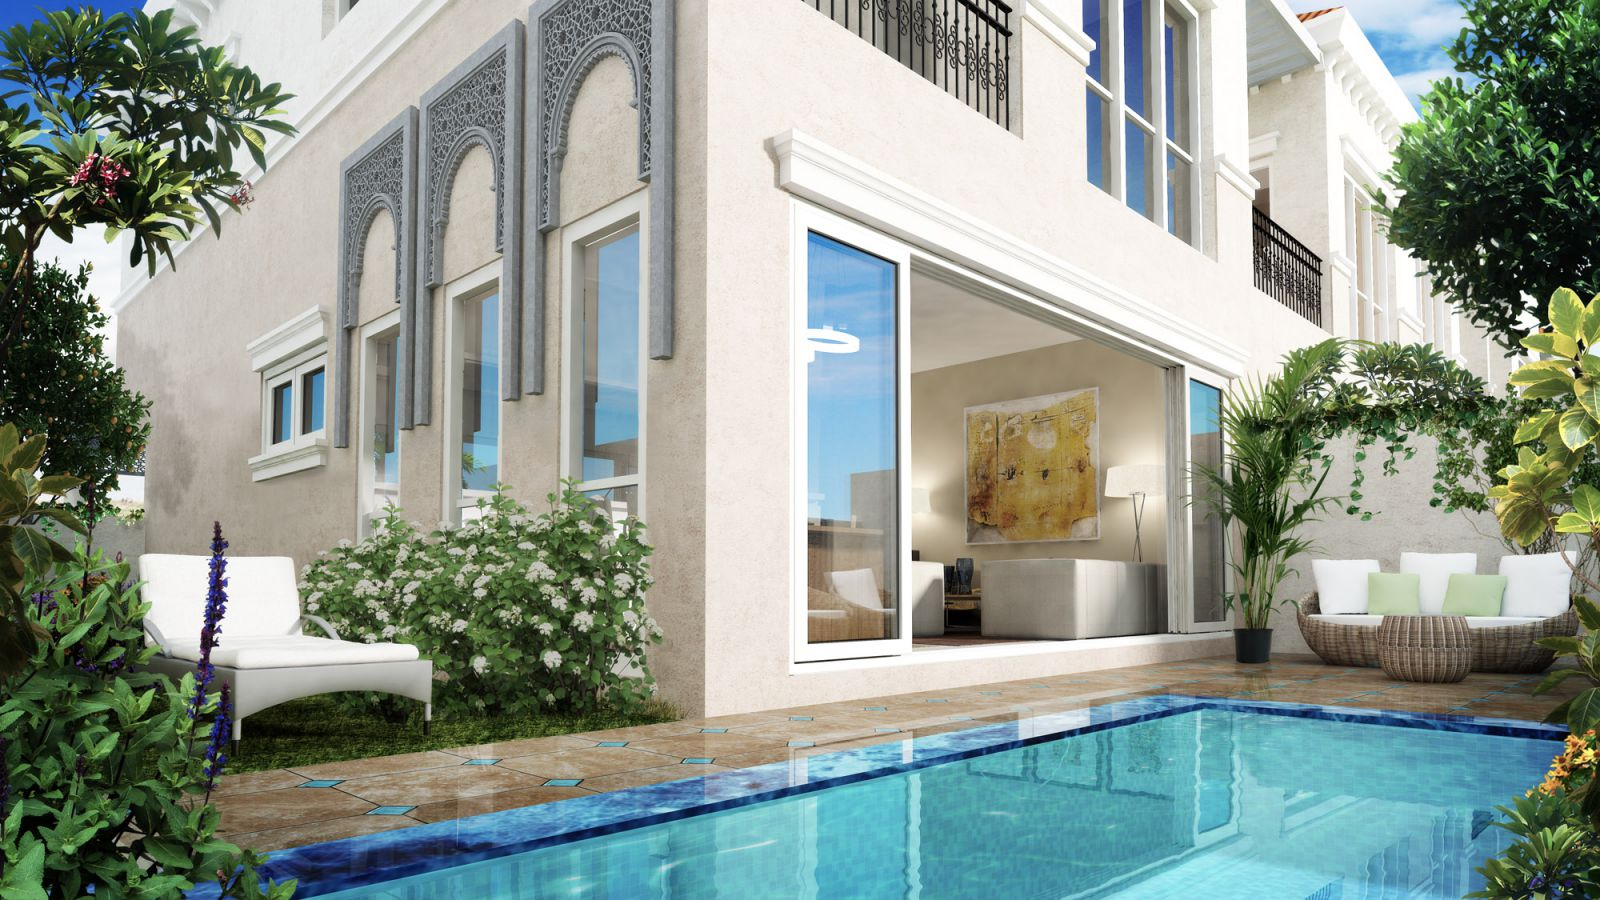 LIVE IT TO BELIEVE IT AT ALANDALUS TOWNHOUSES